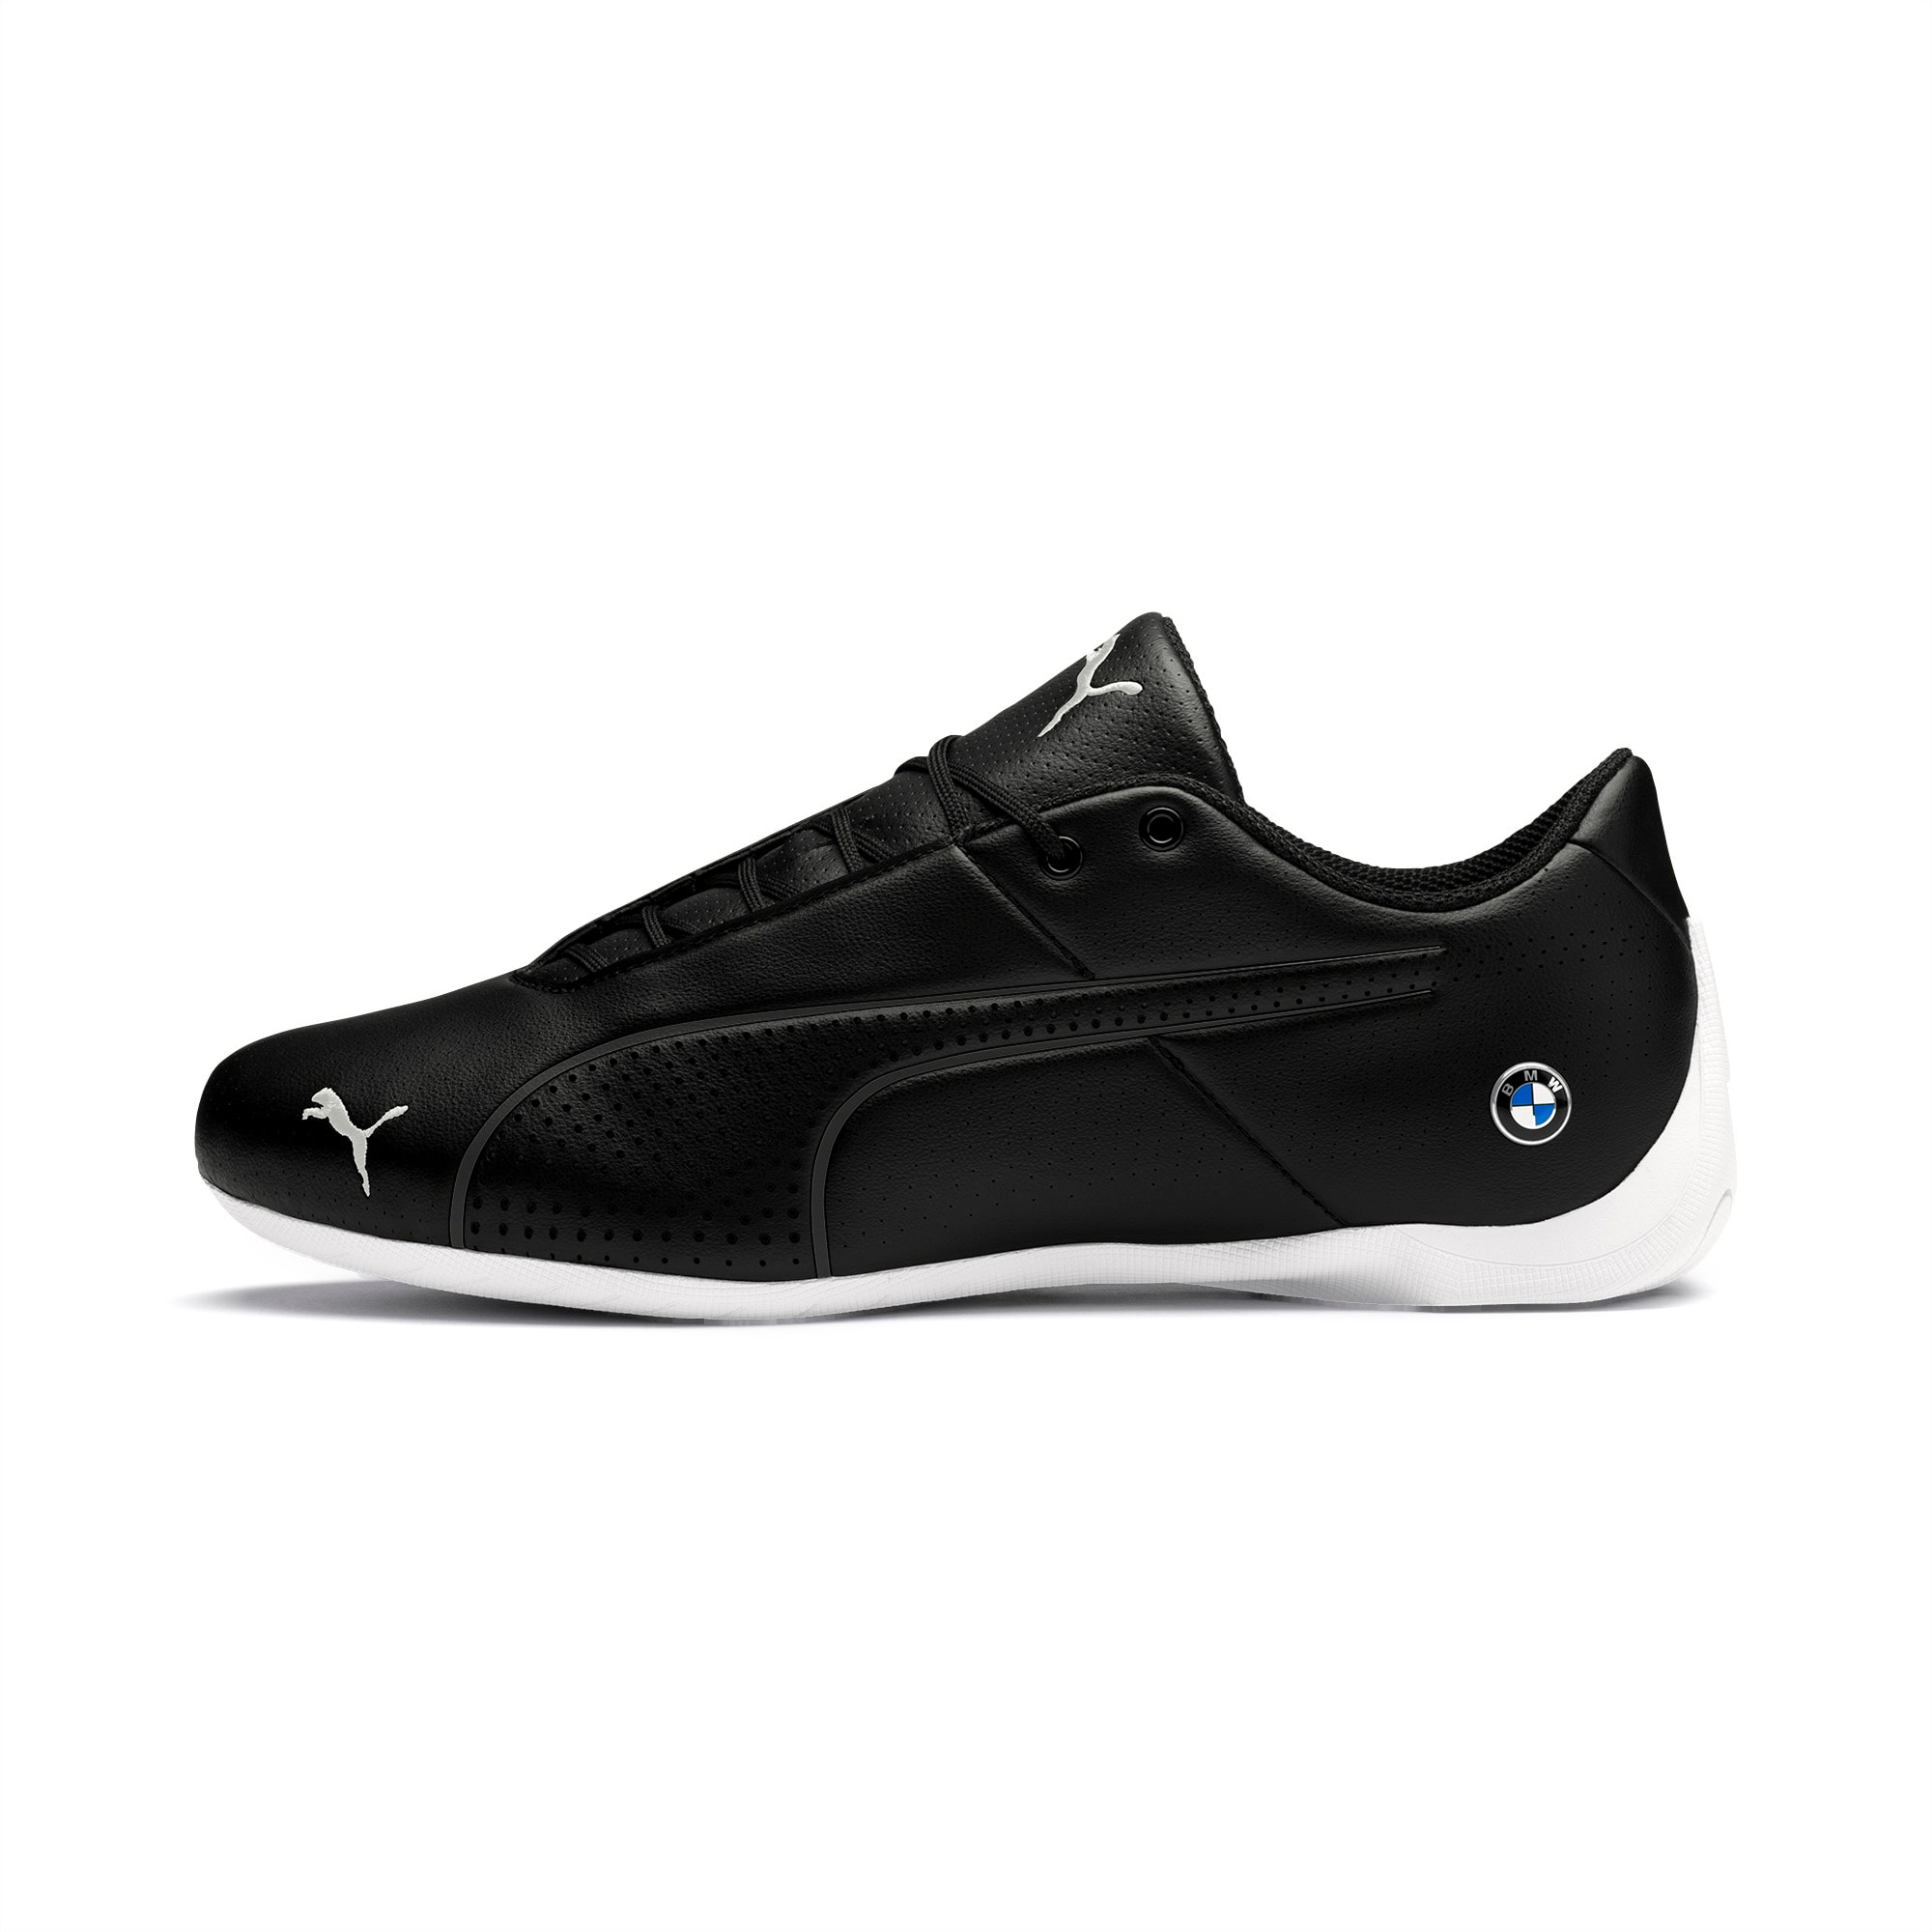 BMW Motorsport Future Cat Ultra Trainers, Black-White-Gray Violet, large-SEA